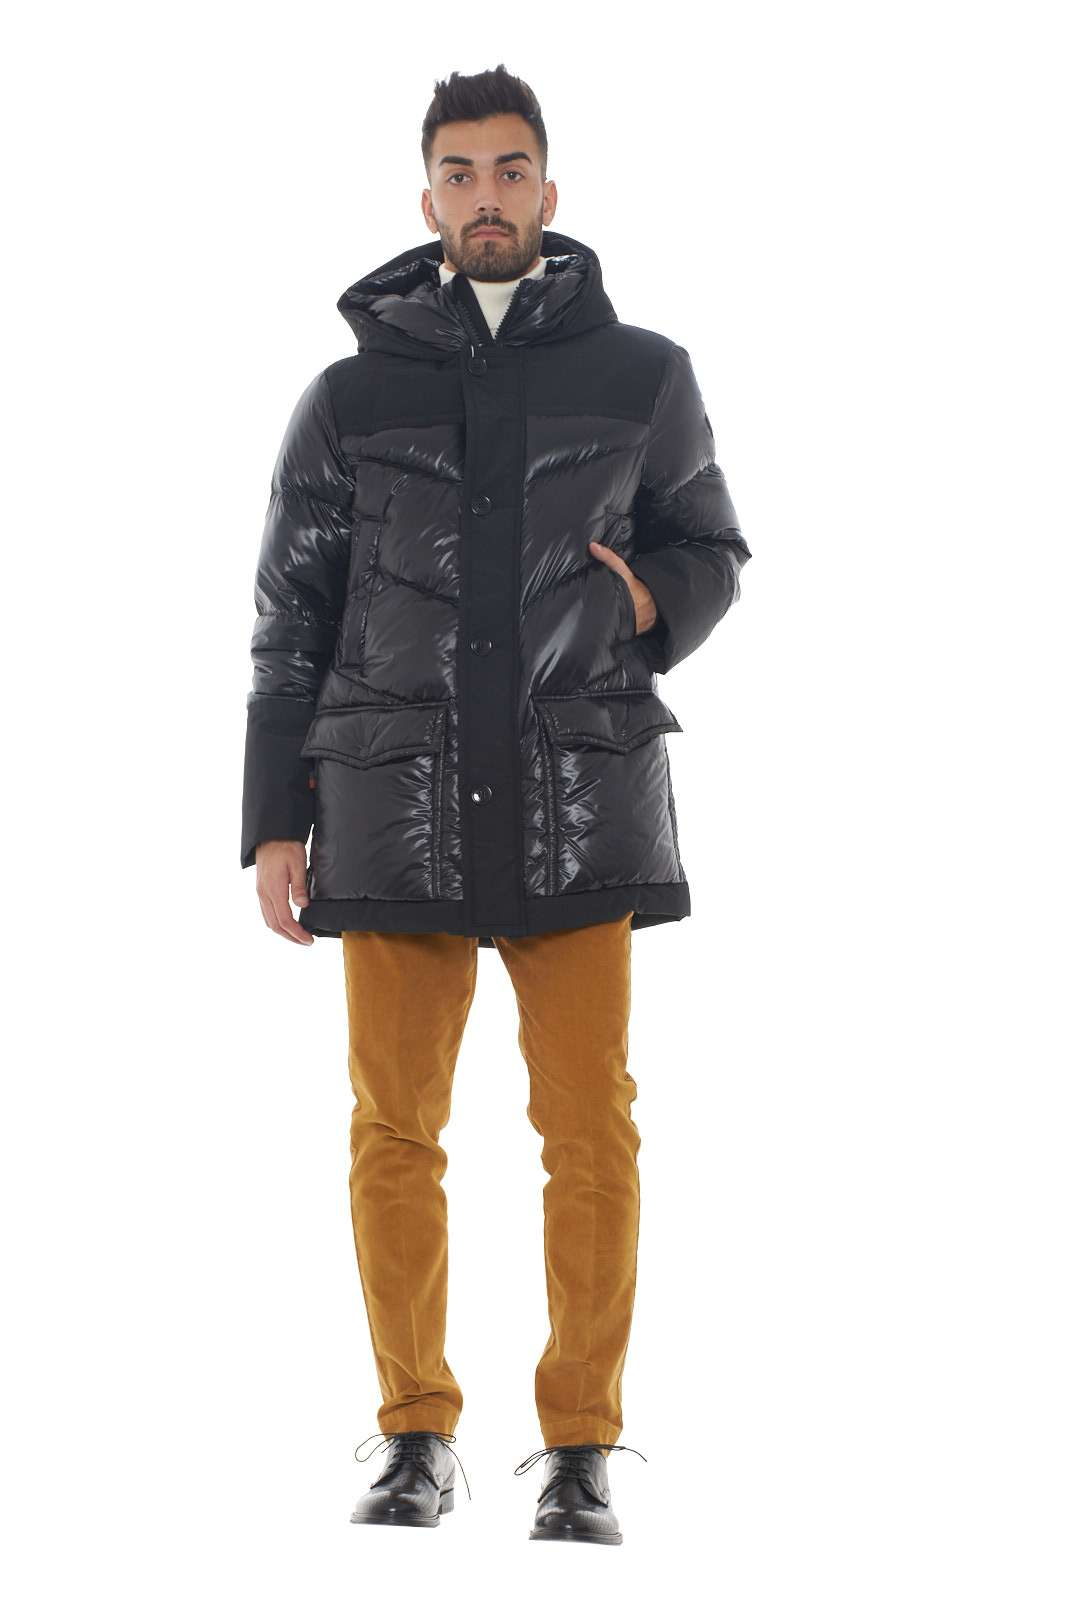 https://www.parmax.com/media/catalog/product/a/i/AI-outlet_parmax-giubbino-uomo-Woolrich-WOCPS2860-D.jpg